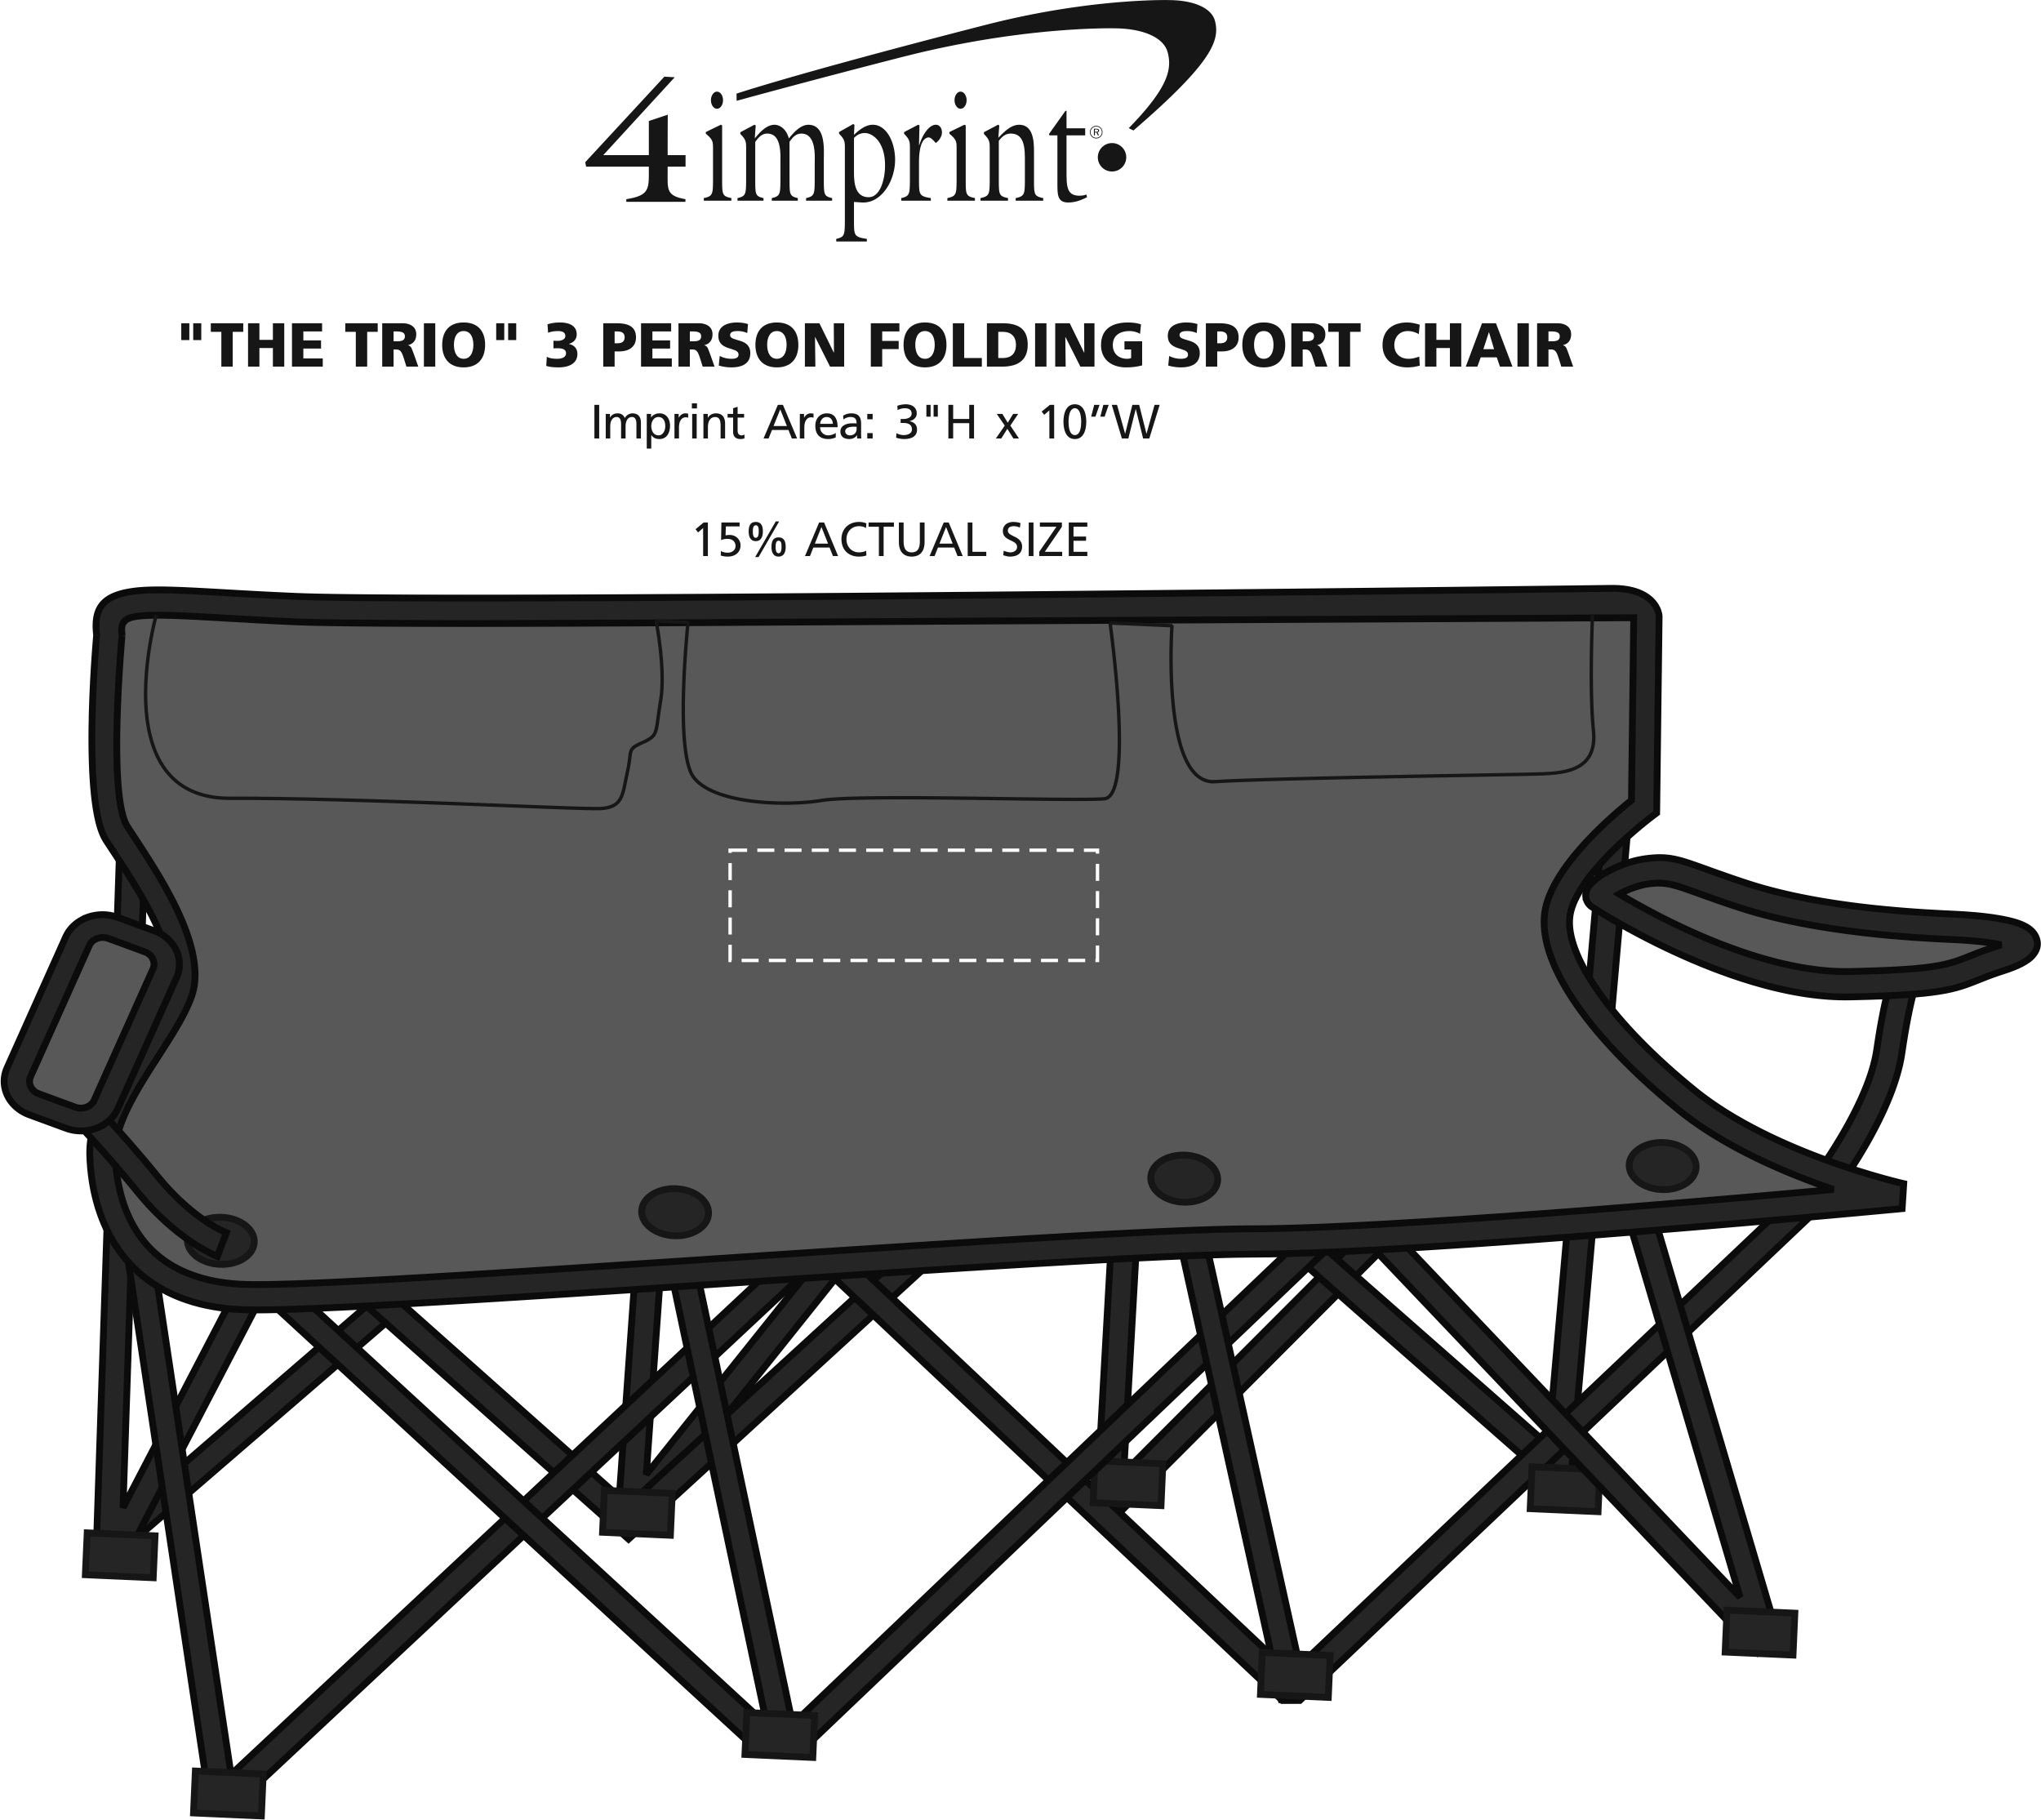 sport folding chairs genuine leather club chair and ottoman 119119 is no longer available 4imprint promotional products main image view imprint